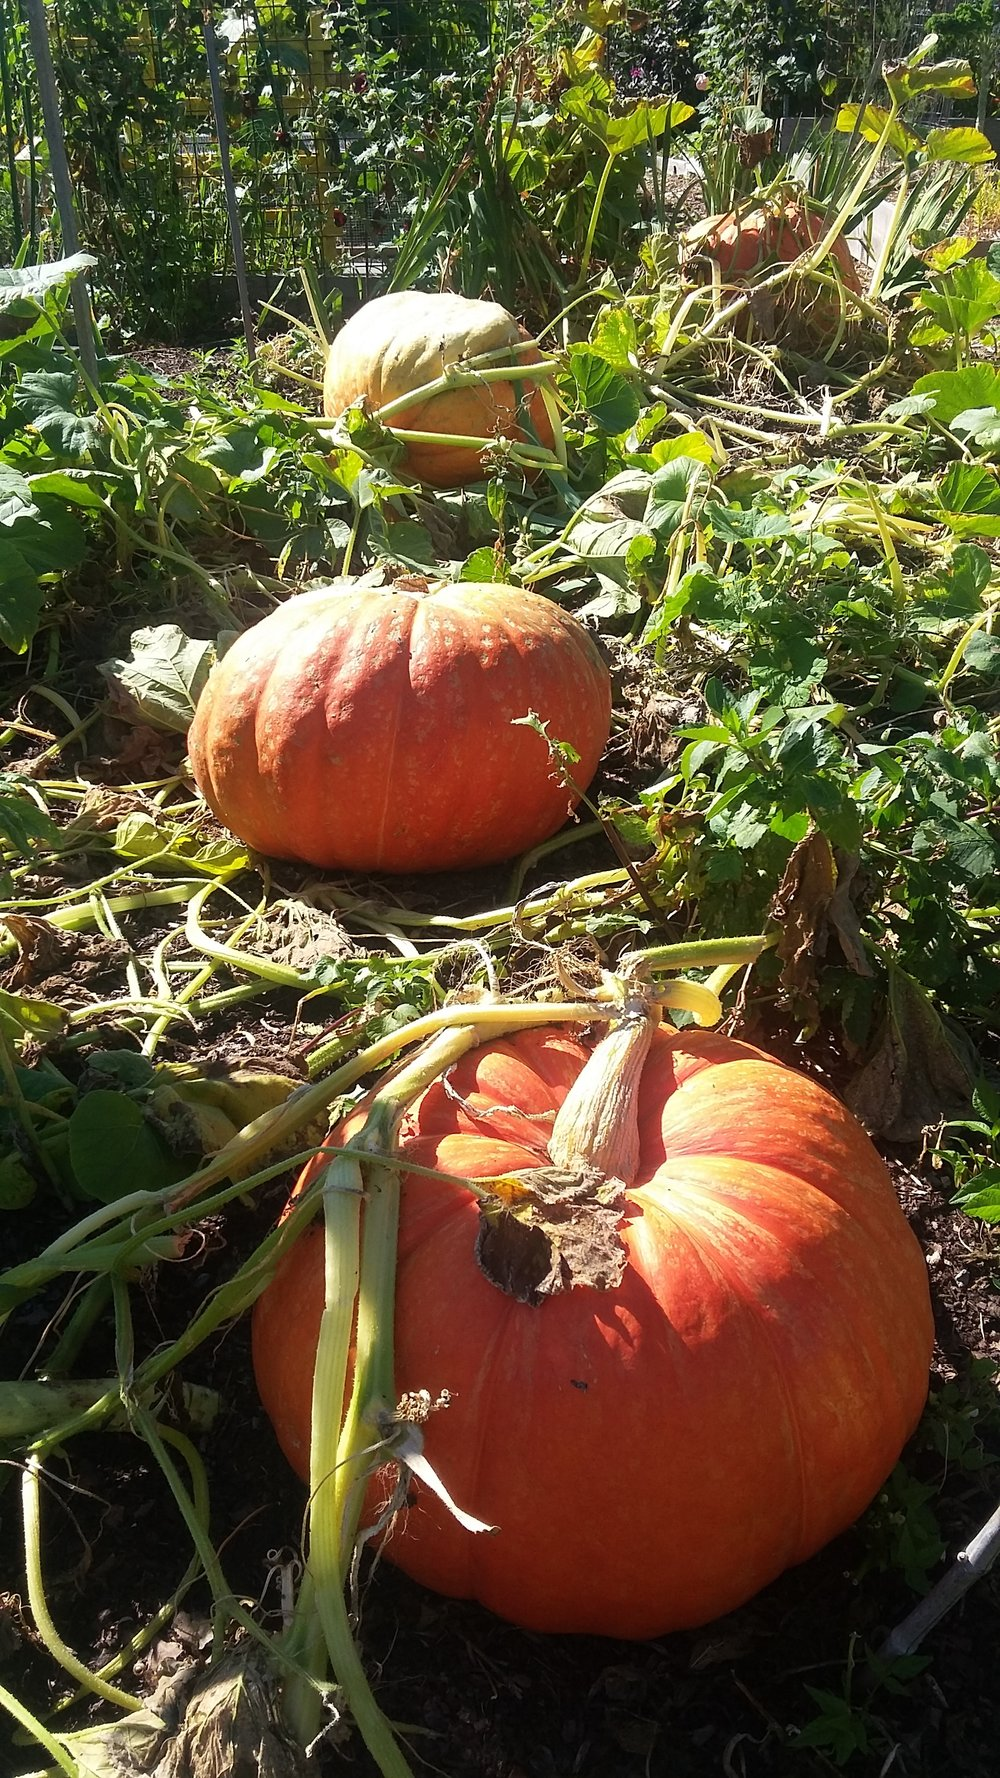 Interbay P-Patch Pumpkins photo: Rolf Hokansson